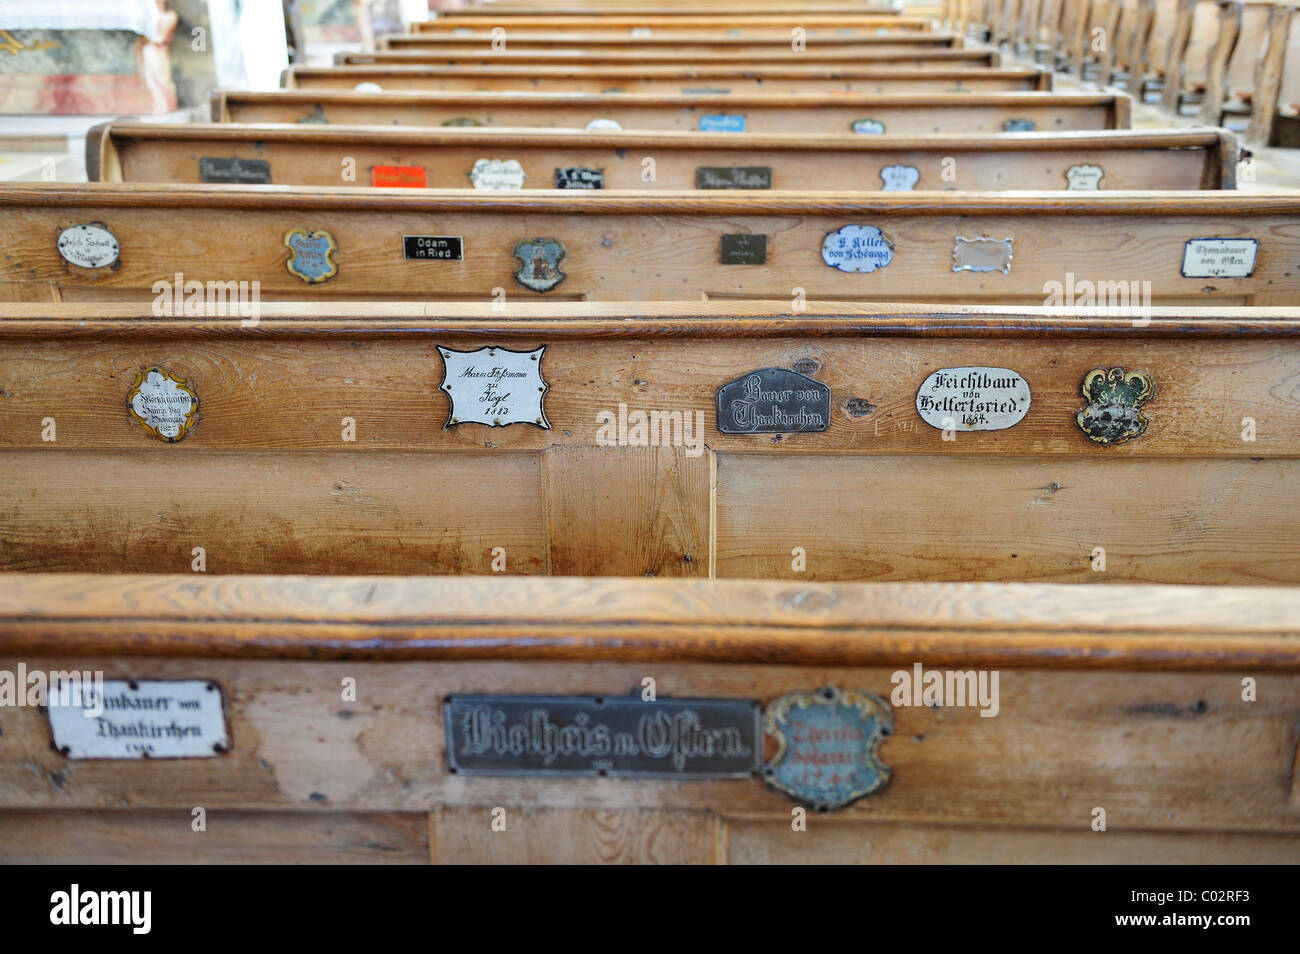 Church pews with nameplates, Visitationists convent Kloster Dietramszell, Dietramszell, Upper Bavaria, Bavaria, - Stock Image